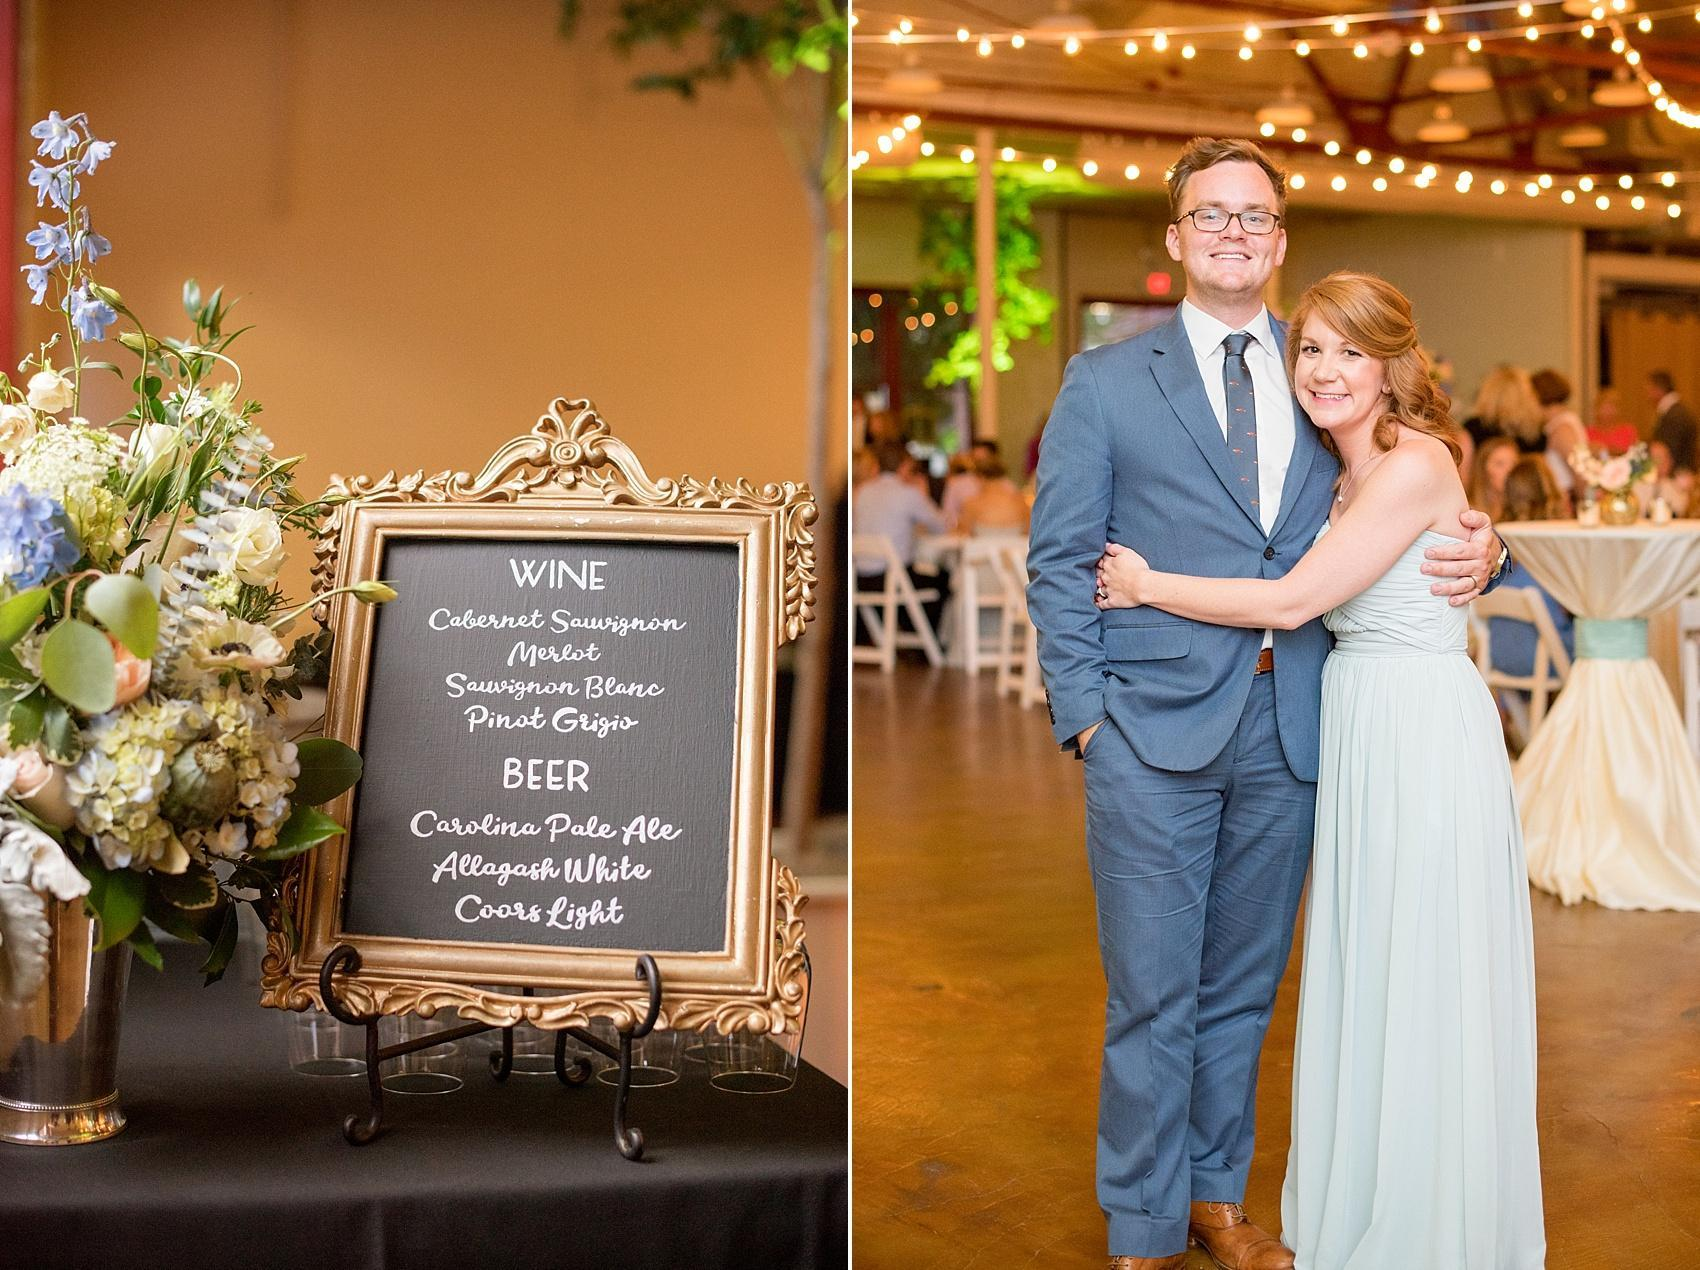 Mikkel Paige Photography photos of a wedding in downtown Raleigh at Market Hall, North Carolina. Custom chalkboard signs for the bar menu.